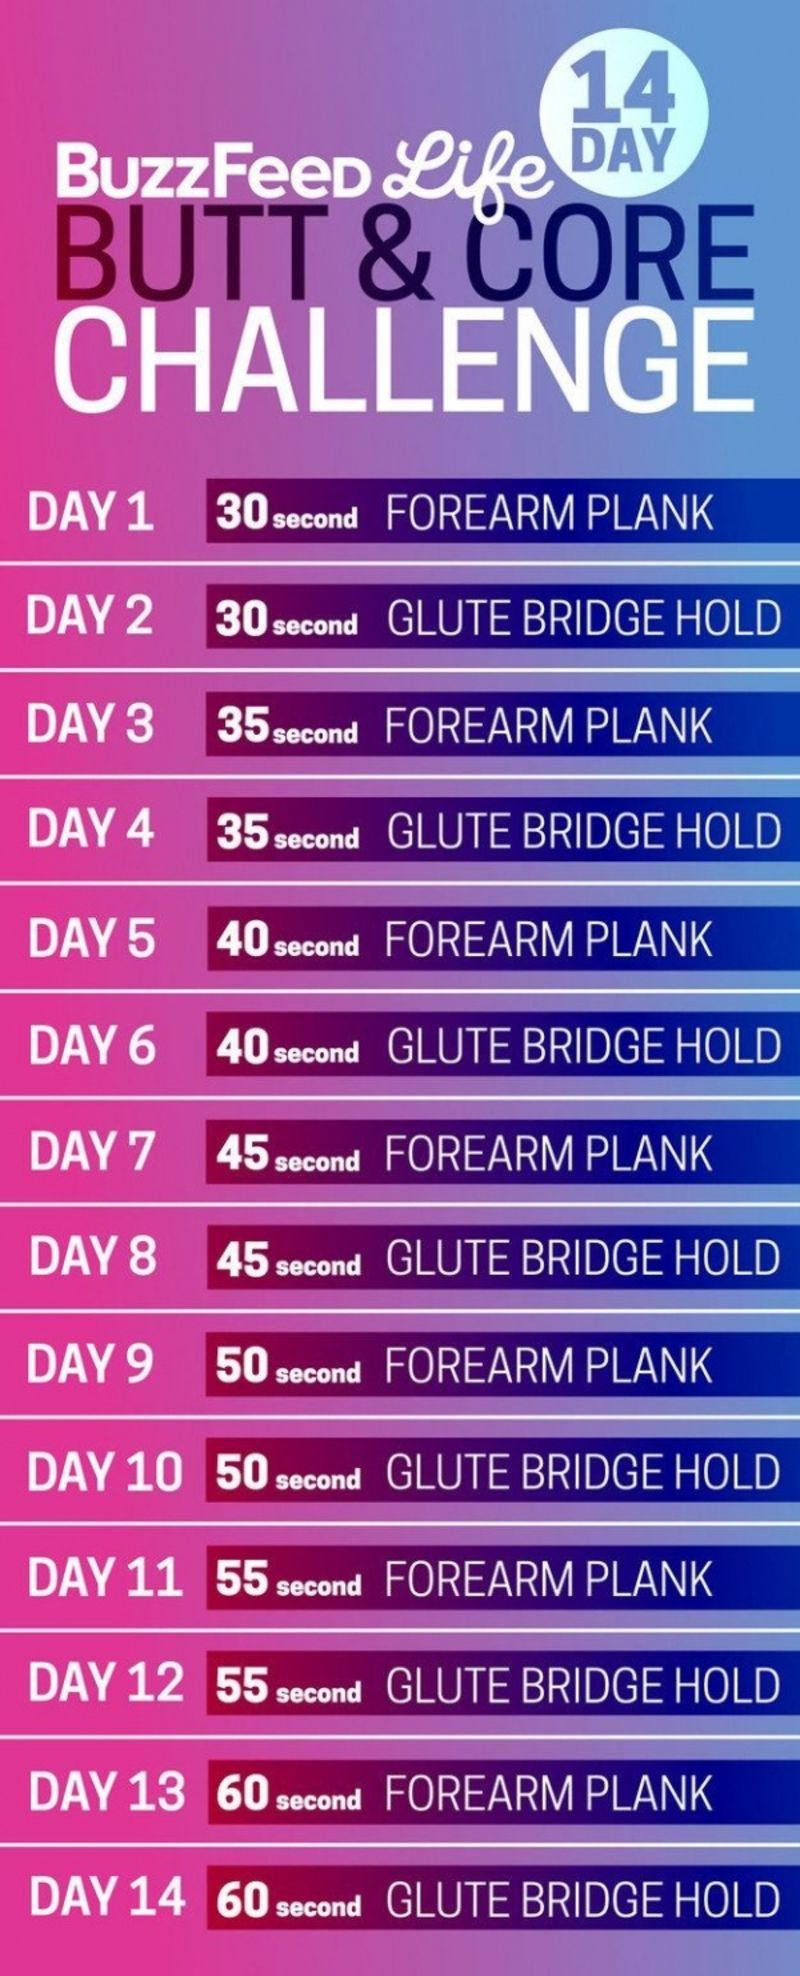 3. 14-Day Butt And Core Challenge - 23 Fit Butt with Butt And Leg Challenges